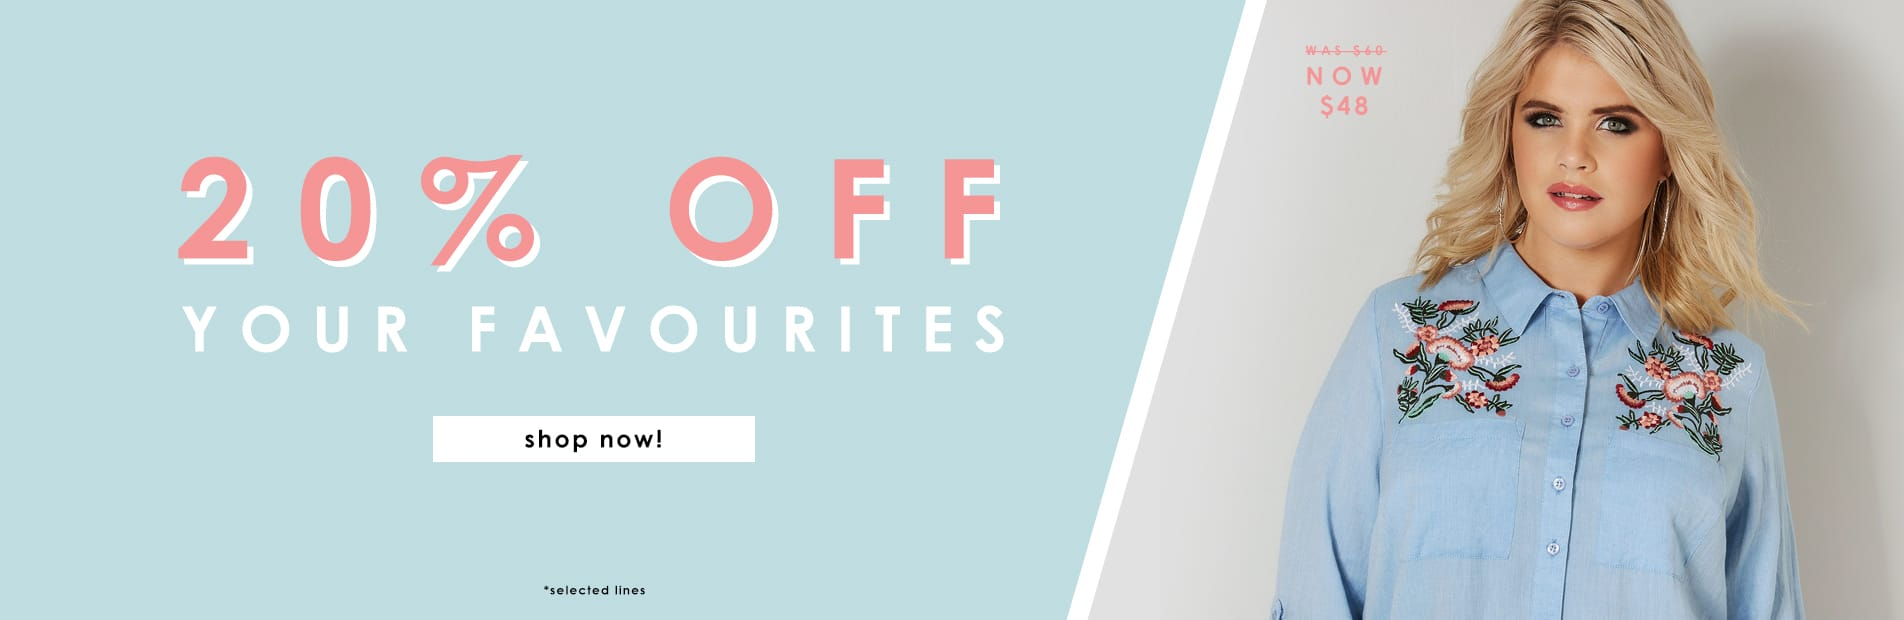 20% off your favourites >